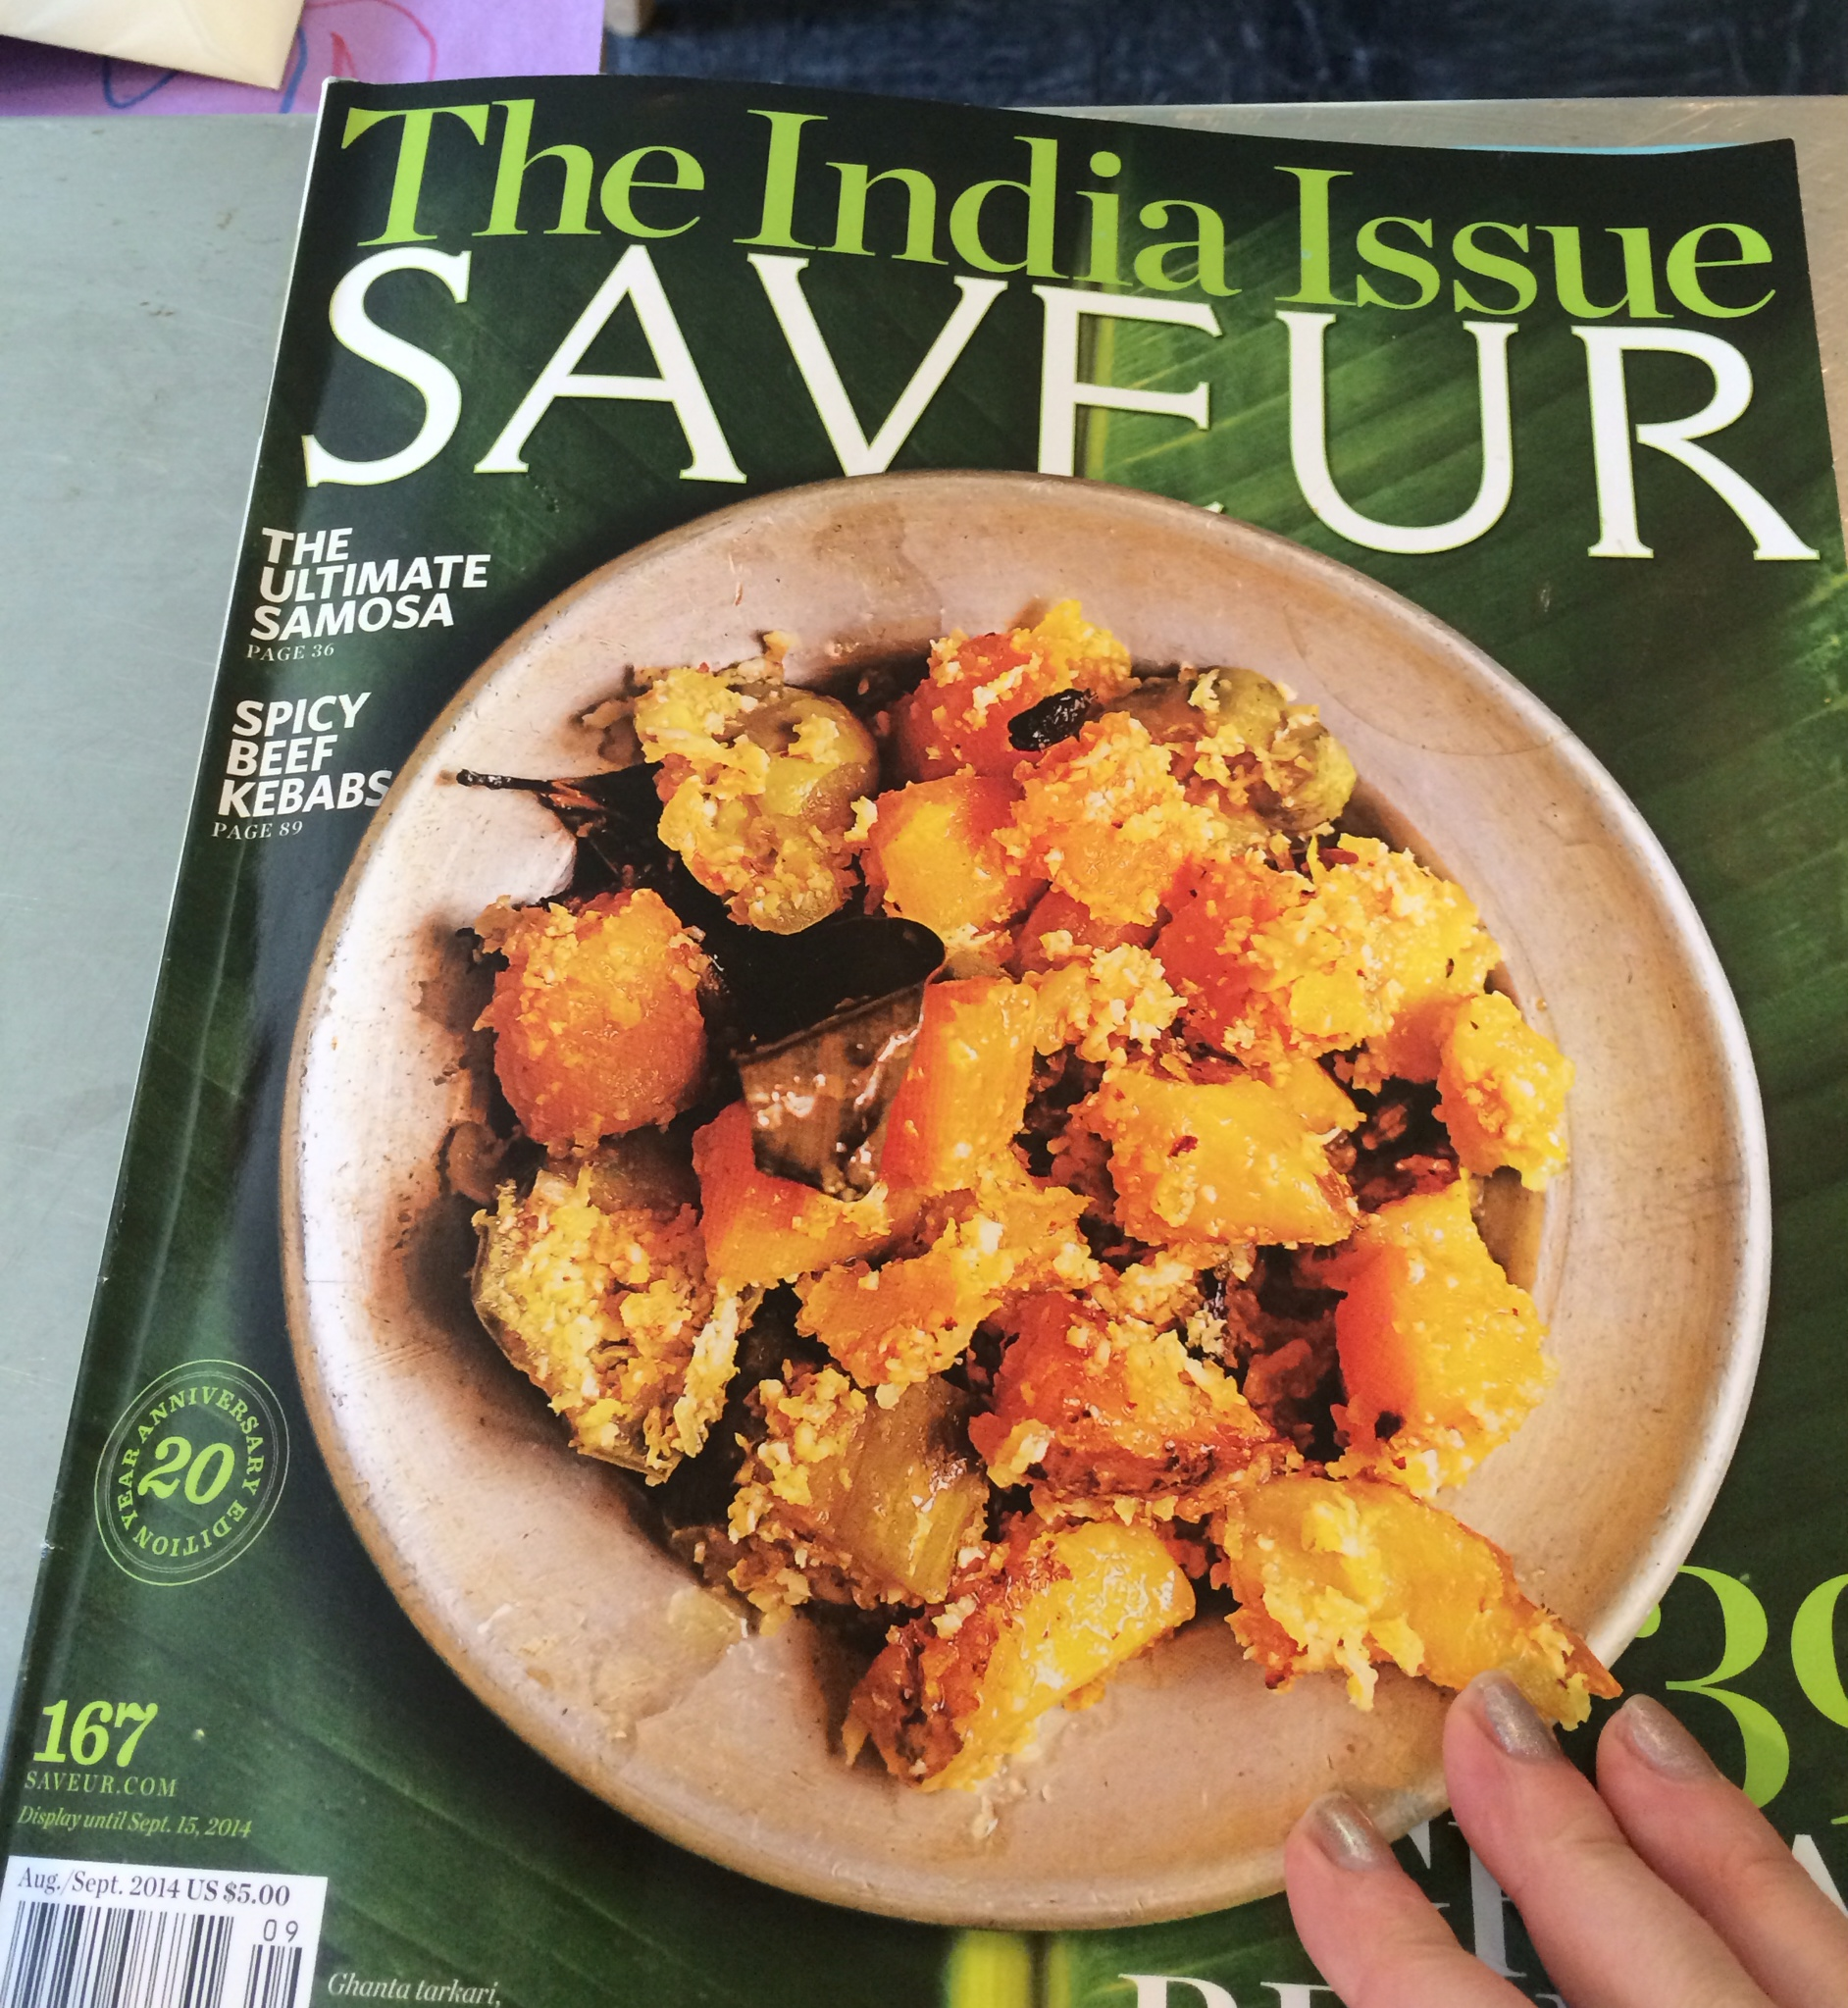 The India Issue of Saveur Magazine